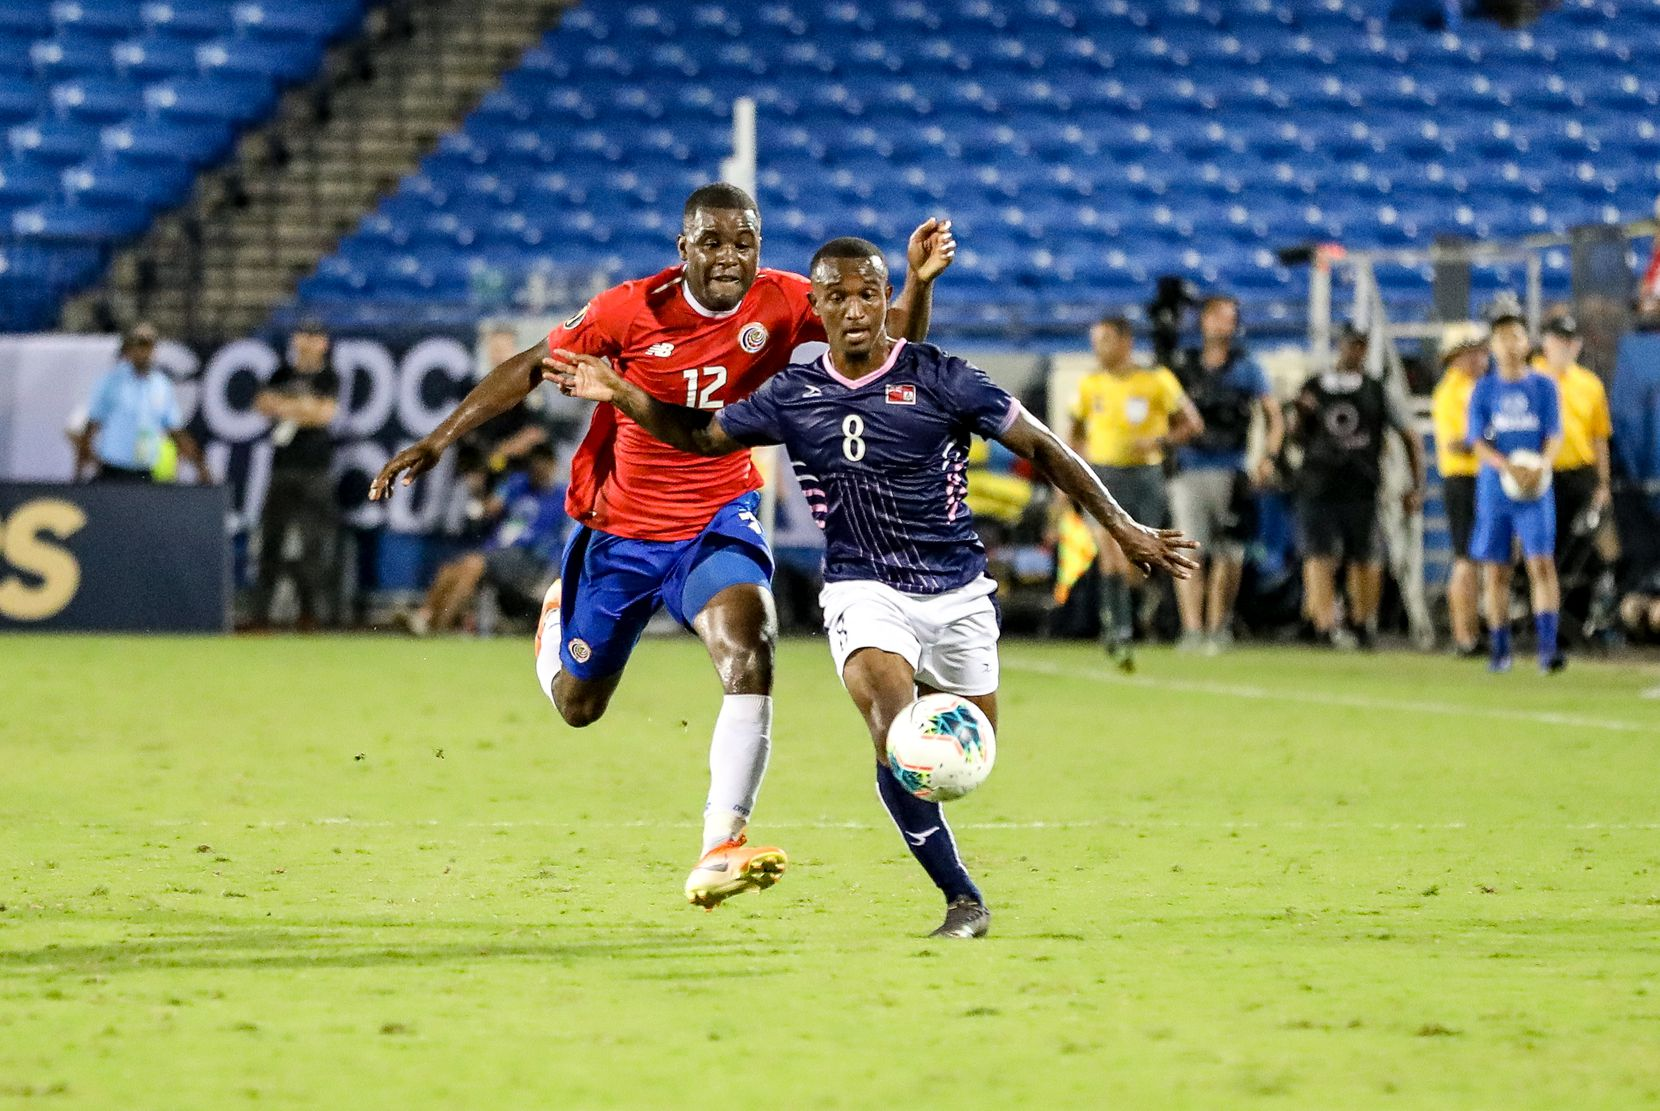 Bryan Oviedo of Bermuda is chased by Costa Rica's Joel Campbell at the 2019 Gold Cup at Toyota Stadium. (6-20-19)